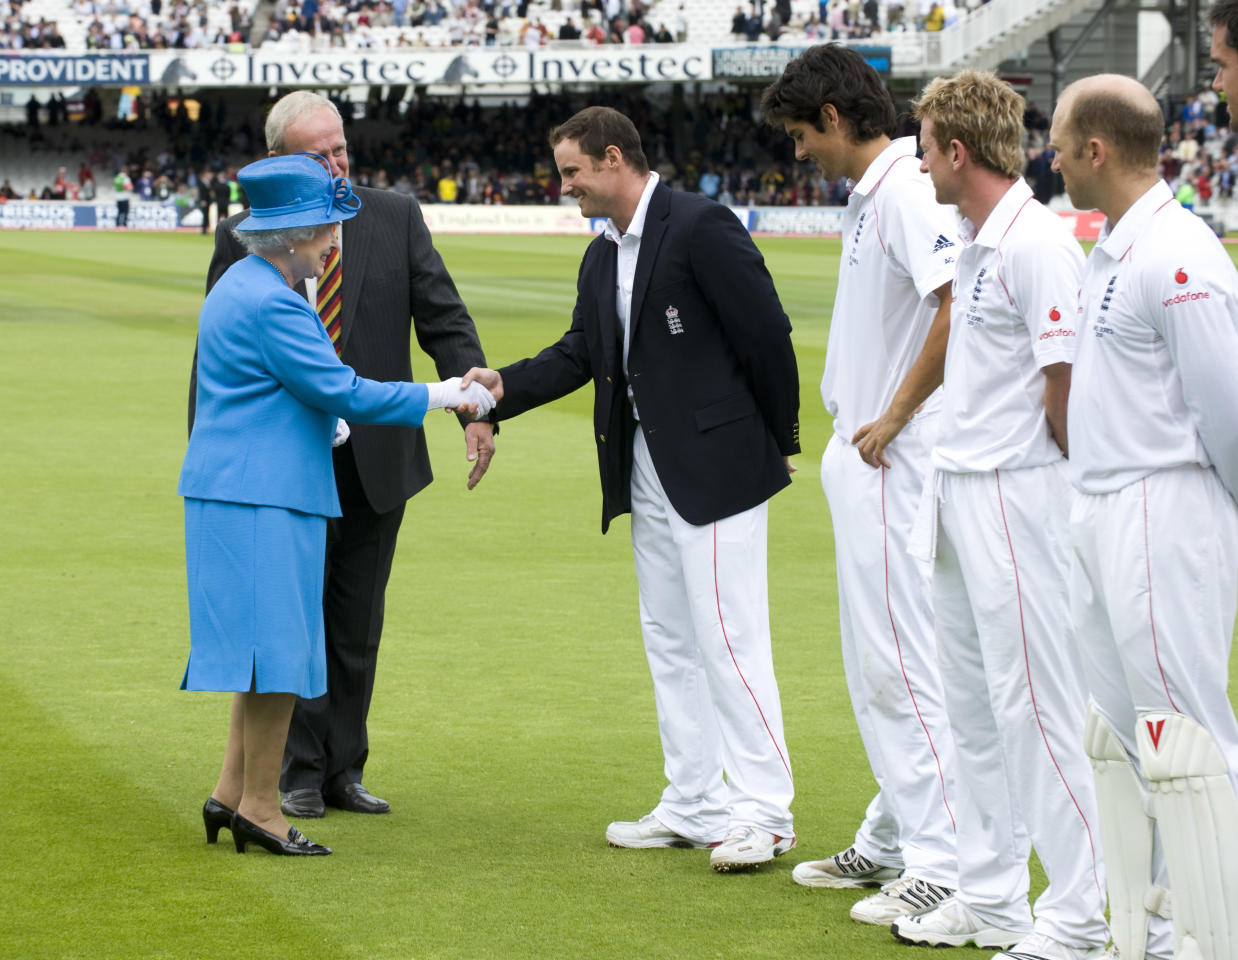 LONDON - JULY 17:  Queen Elizabeth II is introduced to the England team and shakes hands with captain, Andrew Strauss during day two of the npower 2nd Ashes Test Match between England and Australia at Lord's on July 17, 2009 in London, England. (Photo by Arthur Edwards/WPA-Pool/Getty Images)